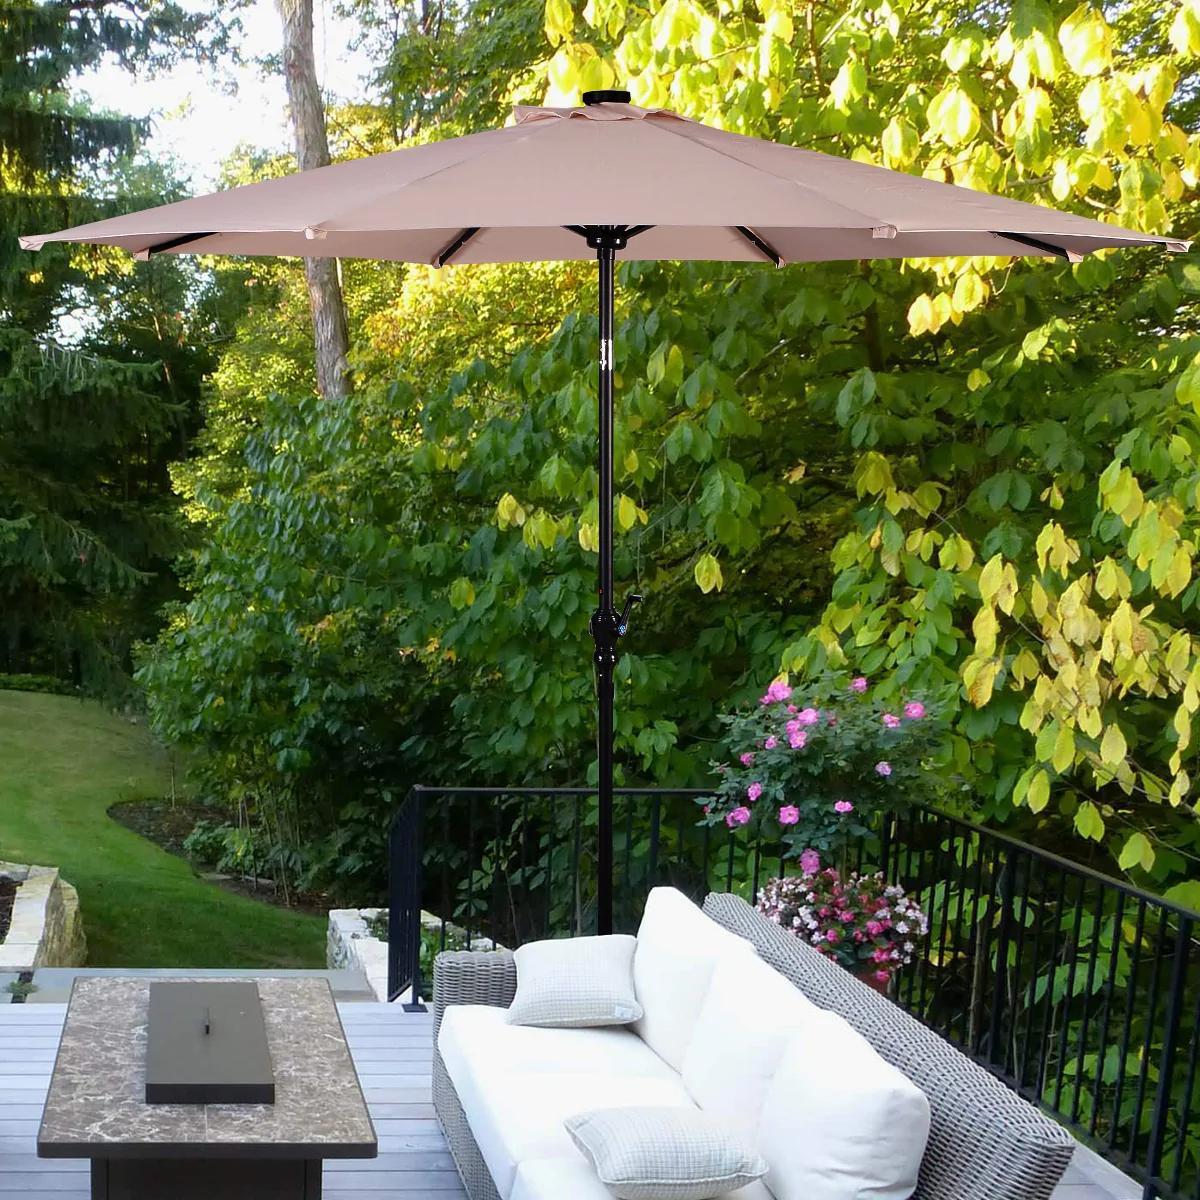 10 ft Patio Market Umbrella Outdoor with Solar Powered LED Light